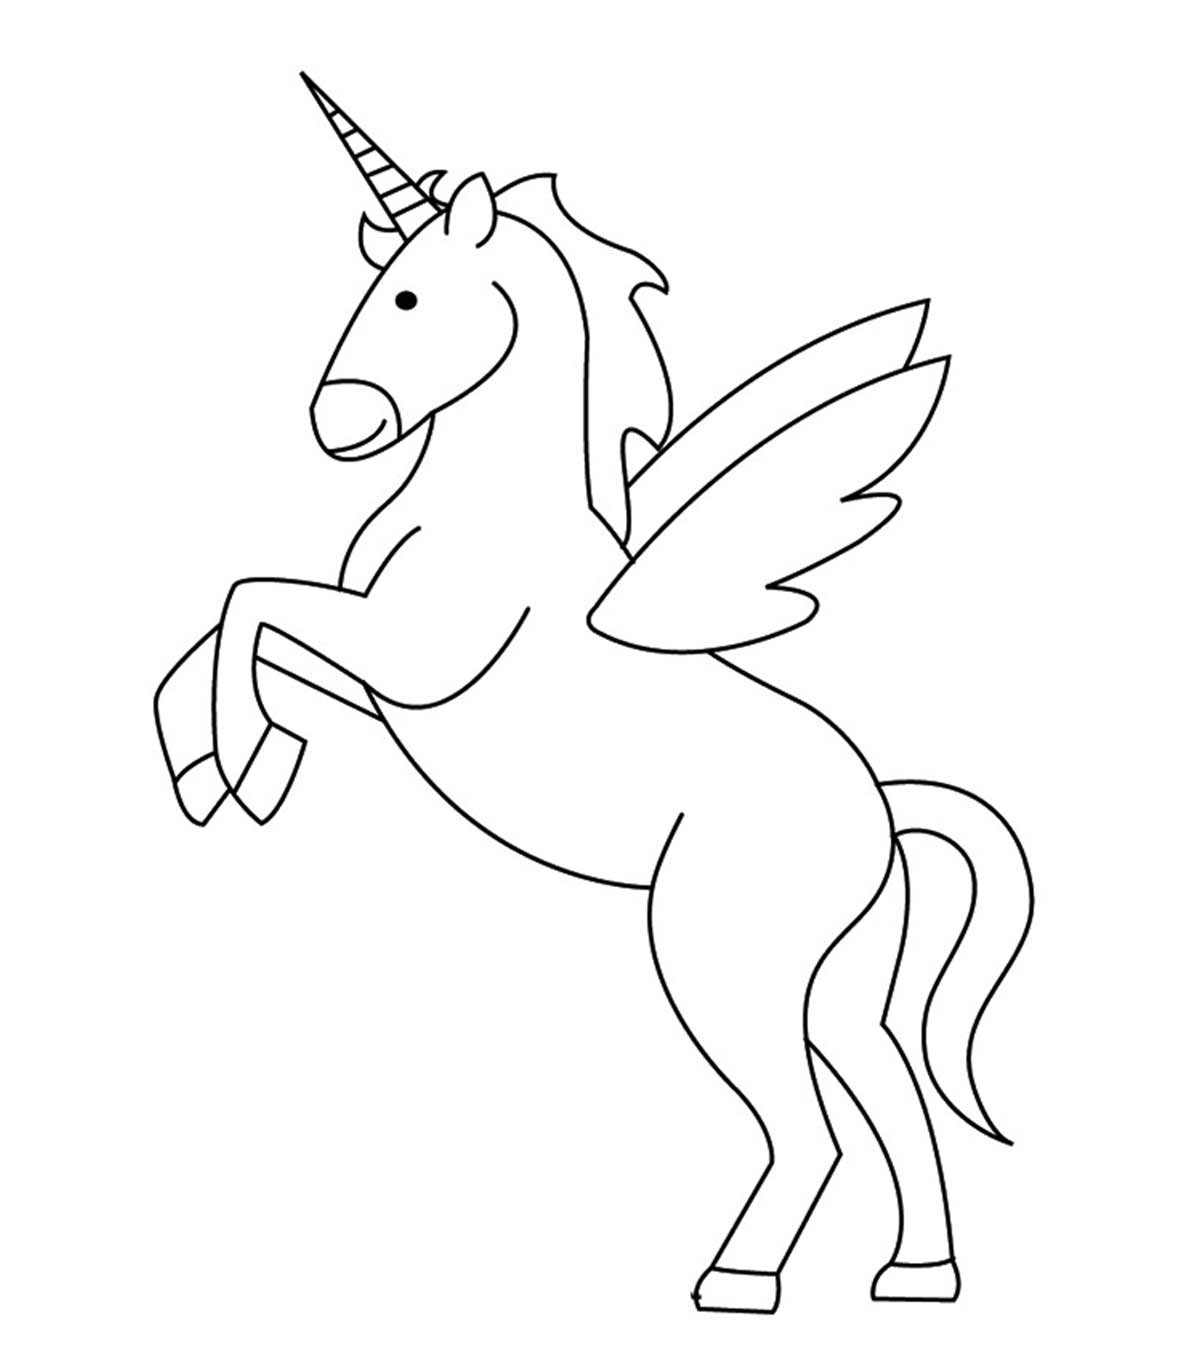 Printable Cute and Chubby Unicorn Coloring Sheet - Print Color Craft | 1350x1200